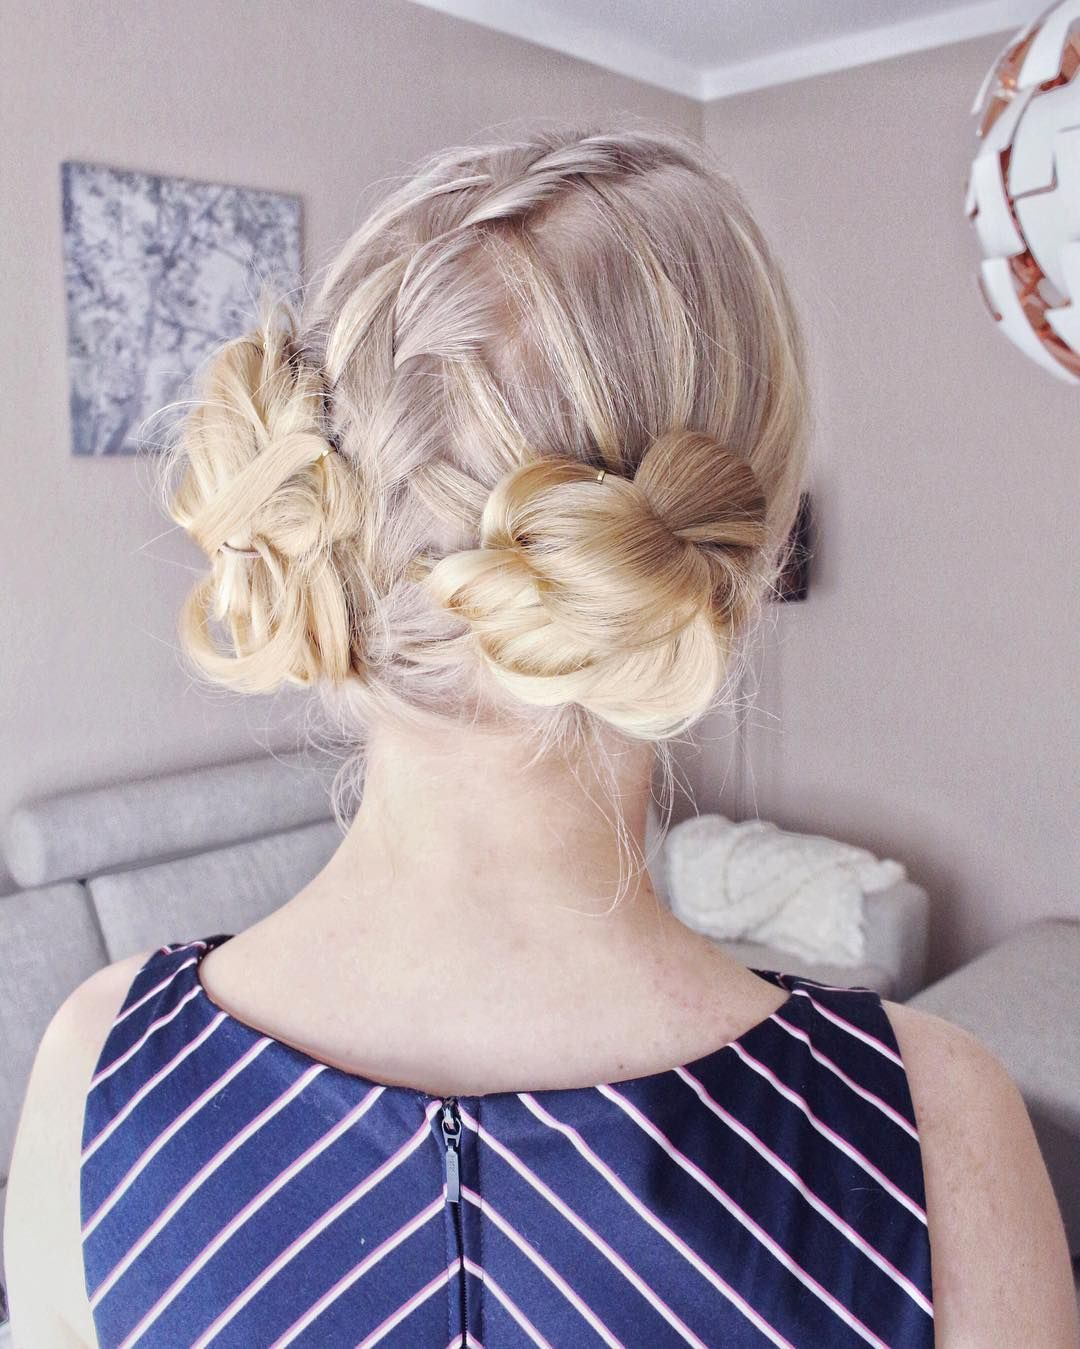 Frenchbraid u instagram photos and videos french braids pinterest